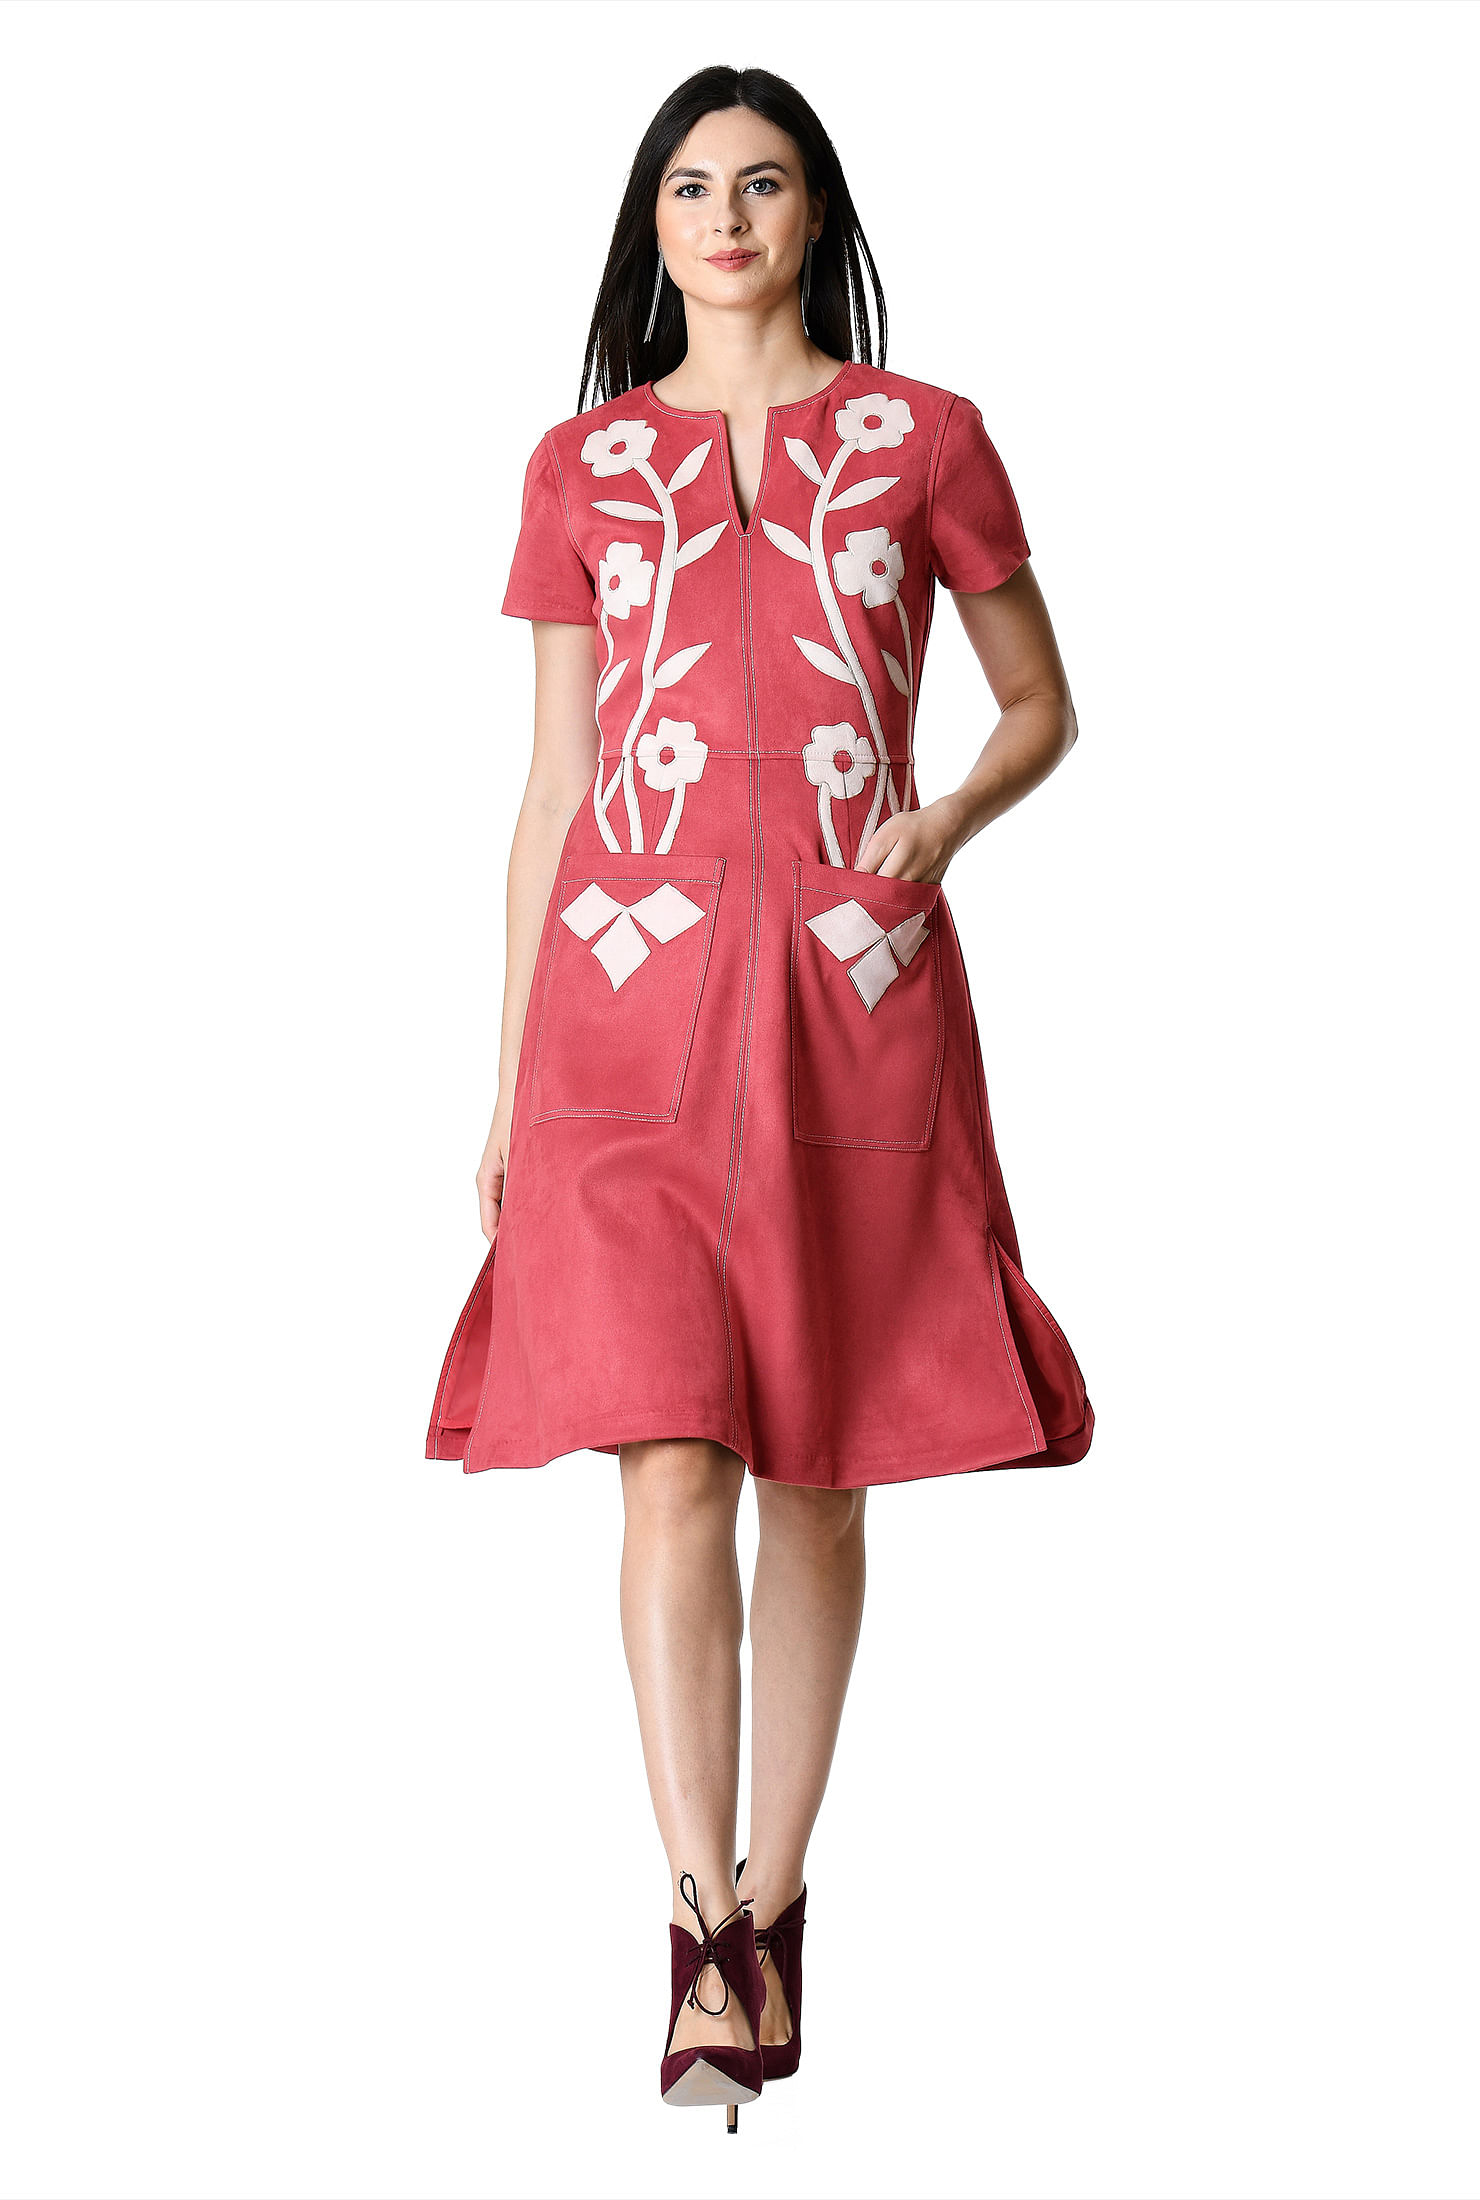 30586743dde316 chic dresses, Distressed red/ecru dresses, fit-and-flare dresses